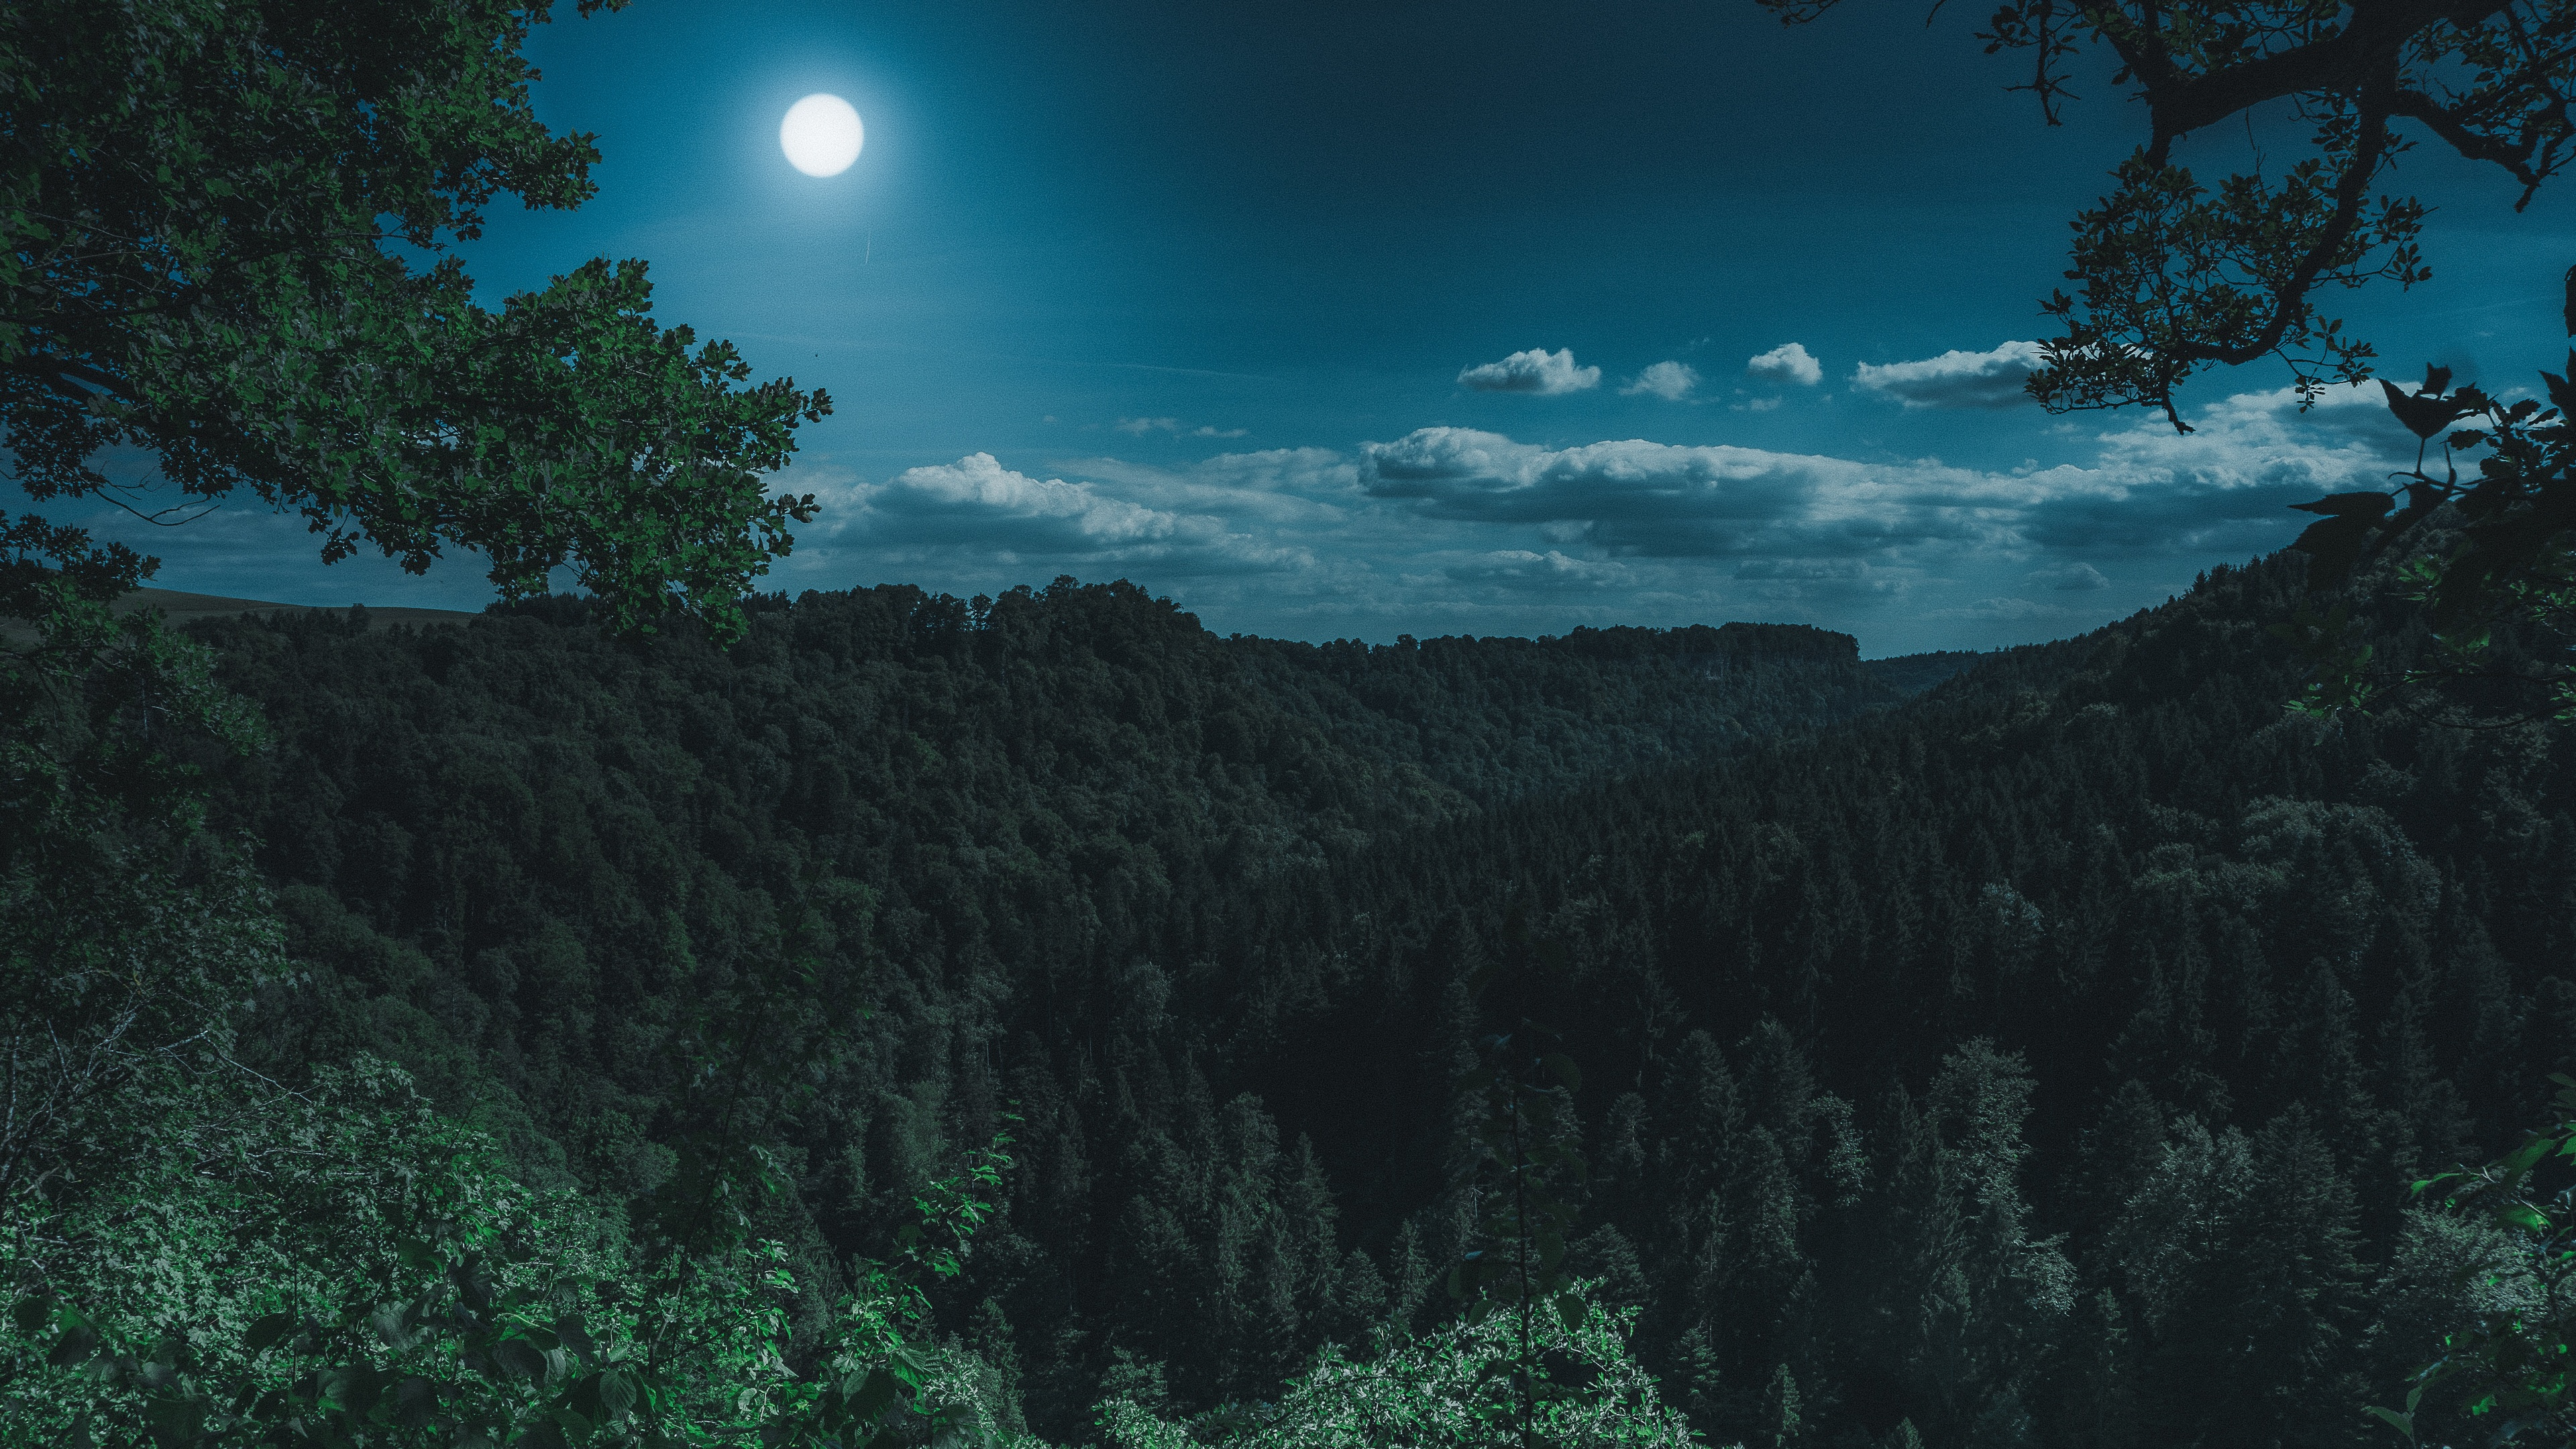 dark night forest view 4k 1551643806 - Dark Night Forest View 4k - photography wallpapers, night wallpapers, moon wallpapers, hd-wallpapers, forest wallpapers, dark wallpapers, 4k-wallpapers